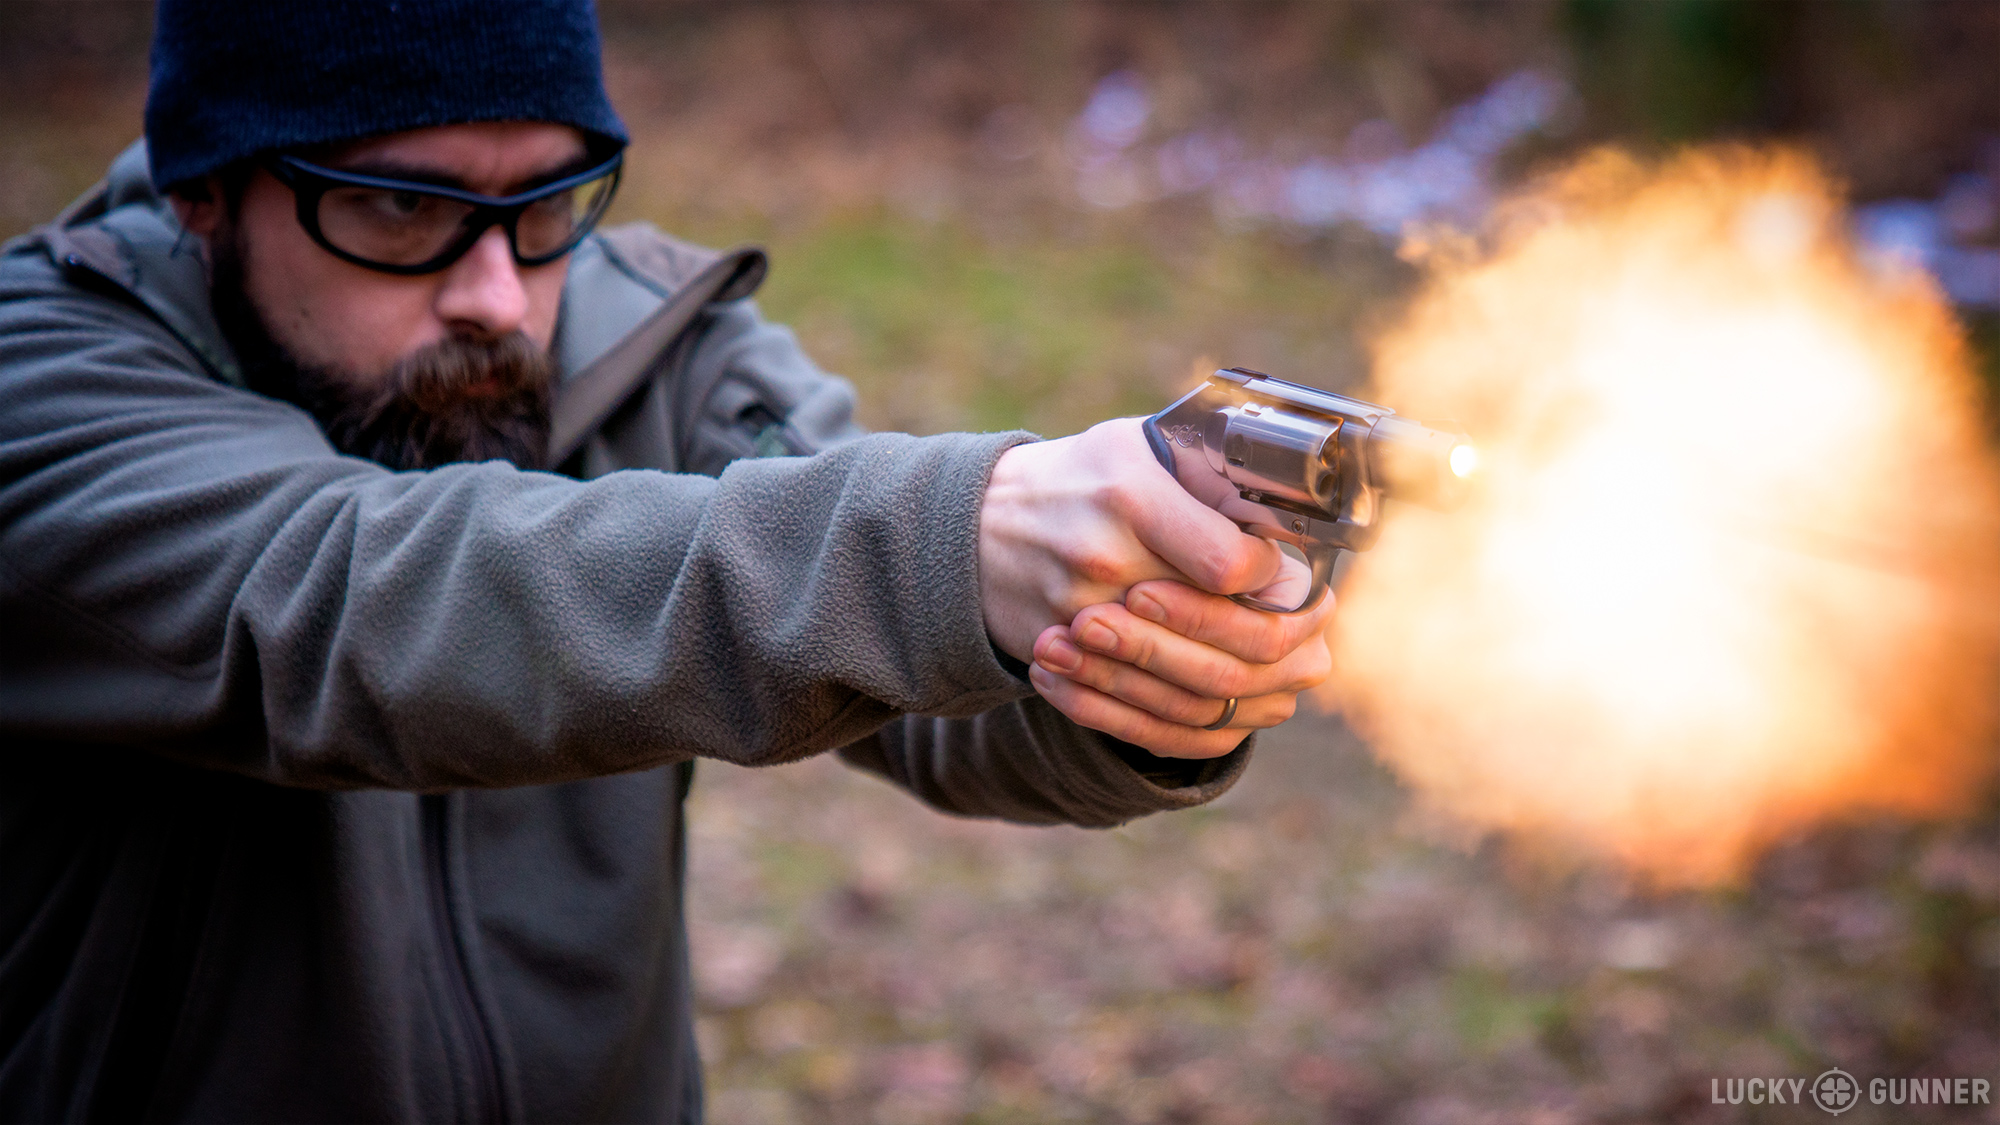 Kimber K6s muzzle flash